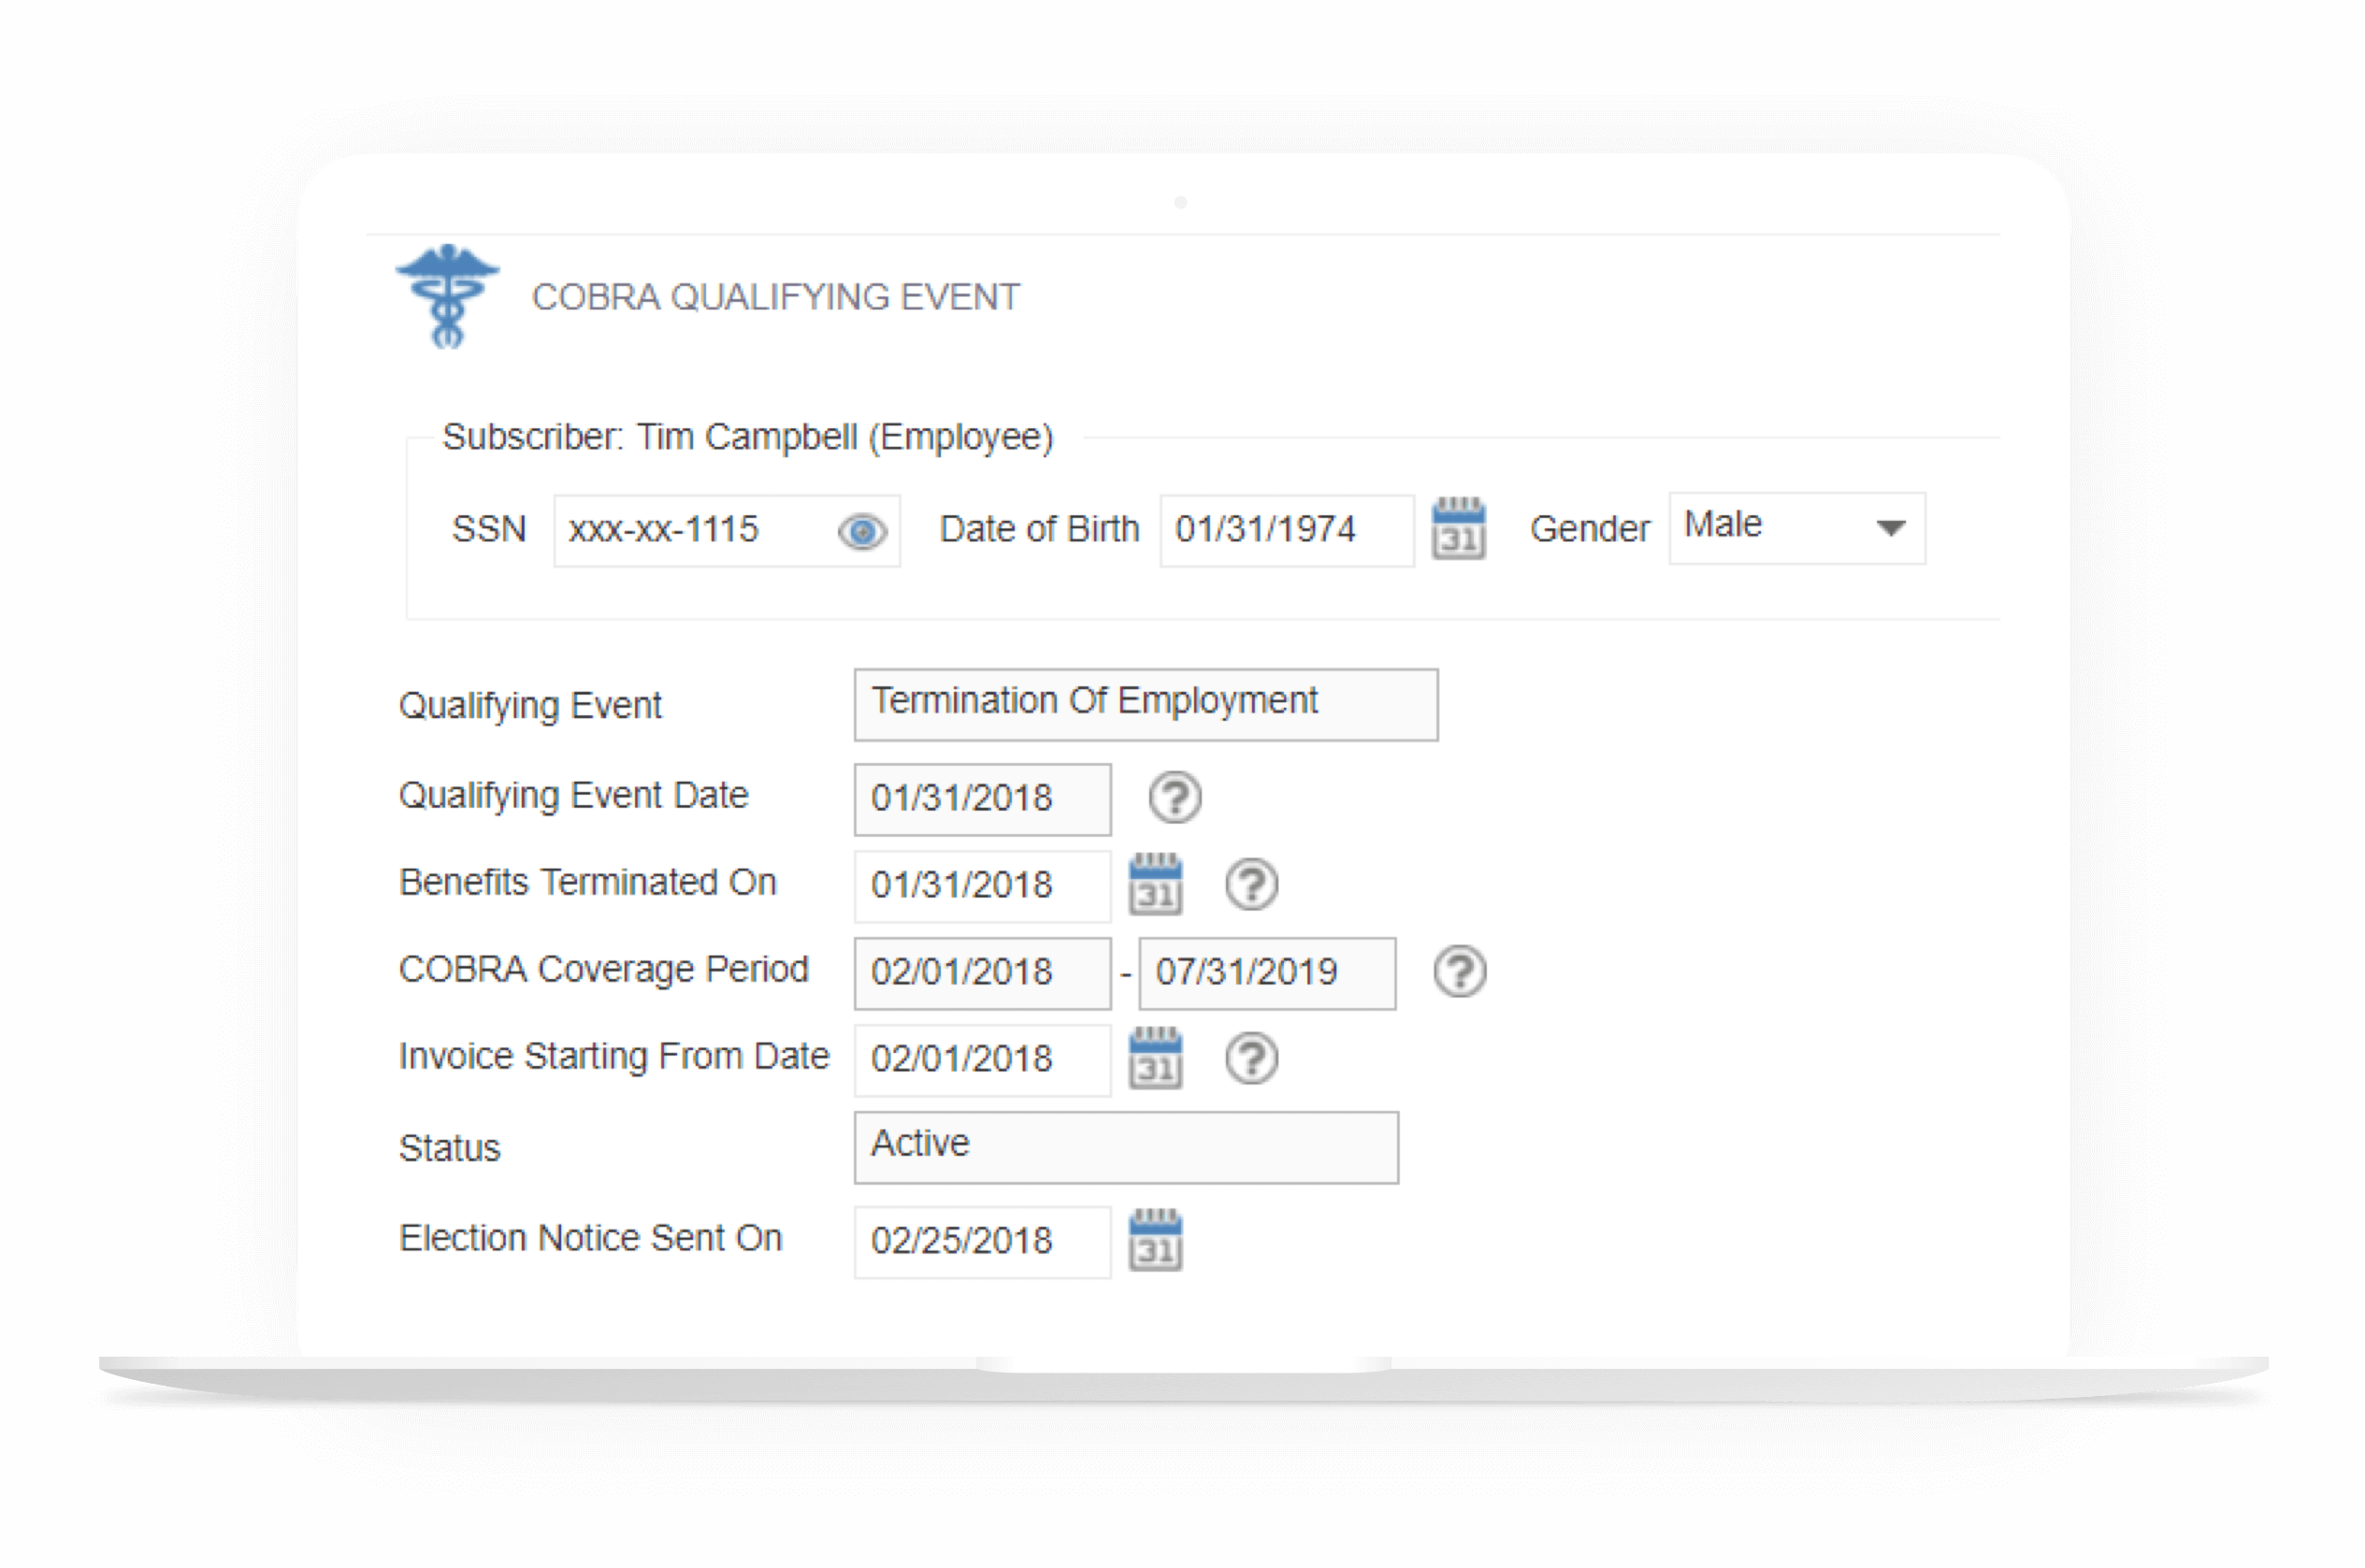 Review COBRA Qualifying Events in our Cobra Administration Software Dashboard